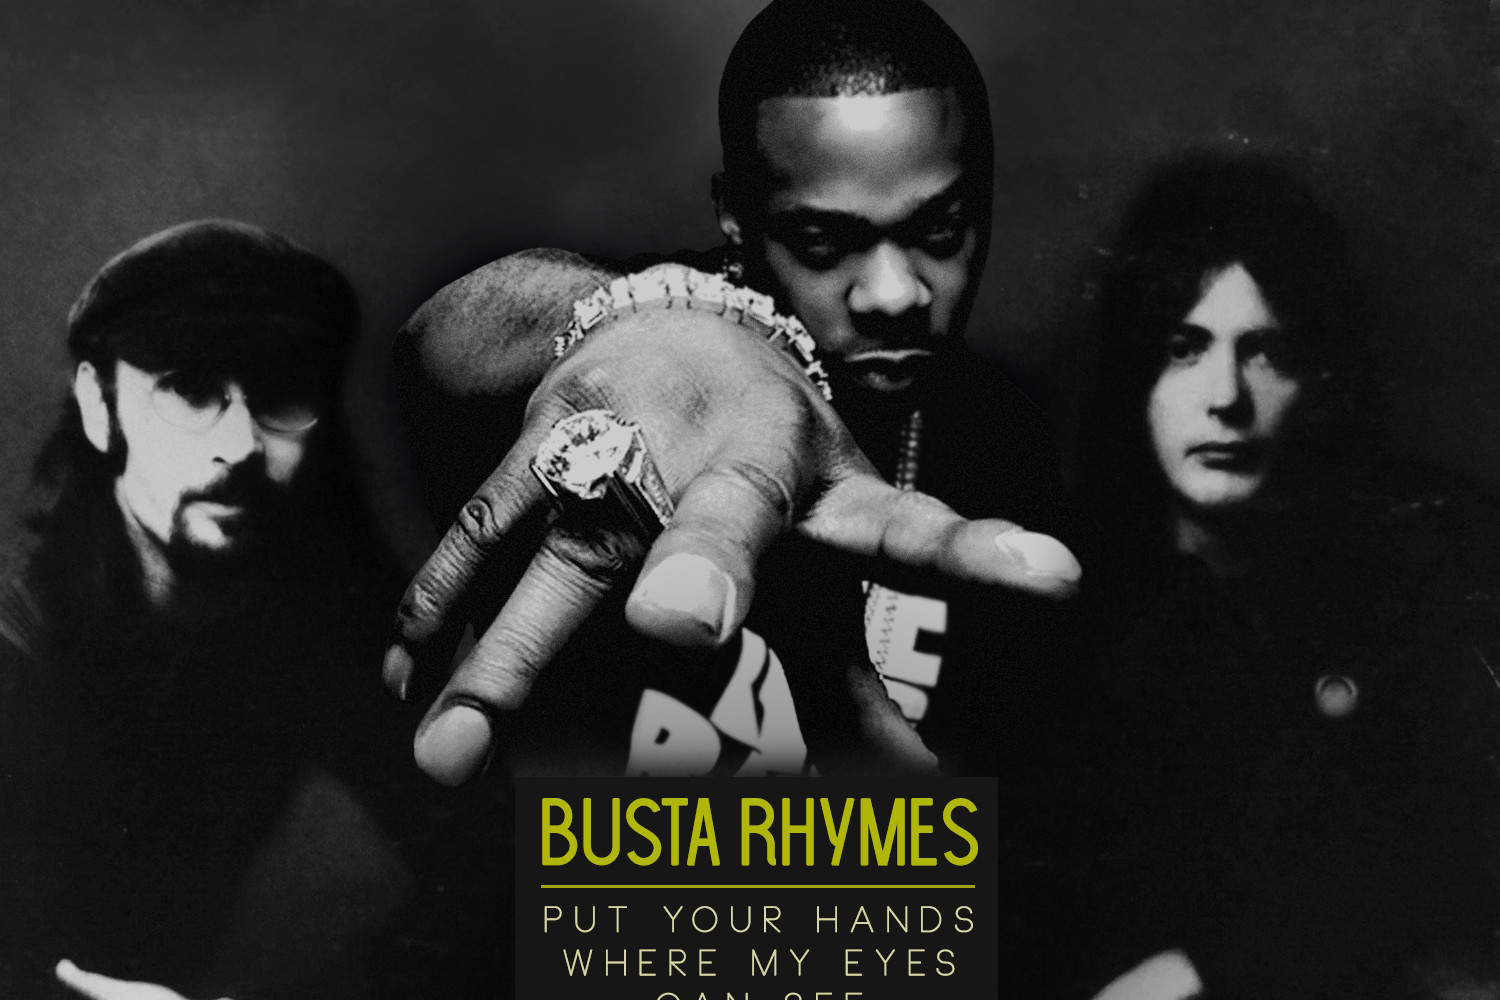 put-your-hands-cover-art.jpg